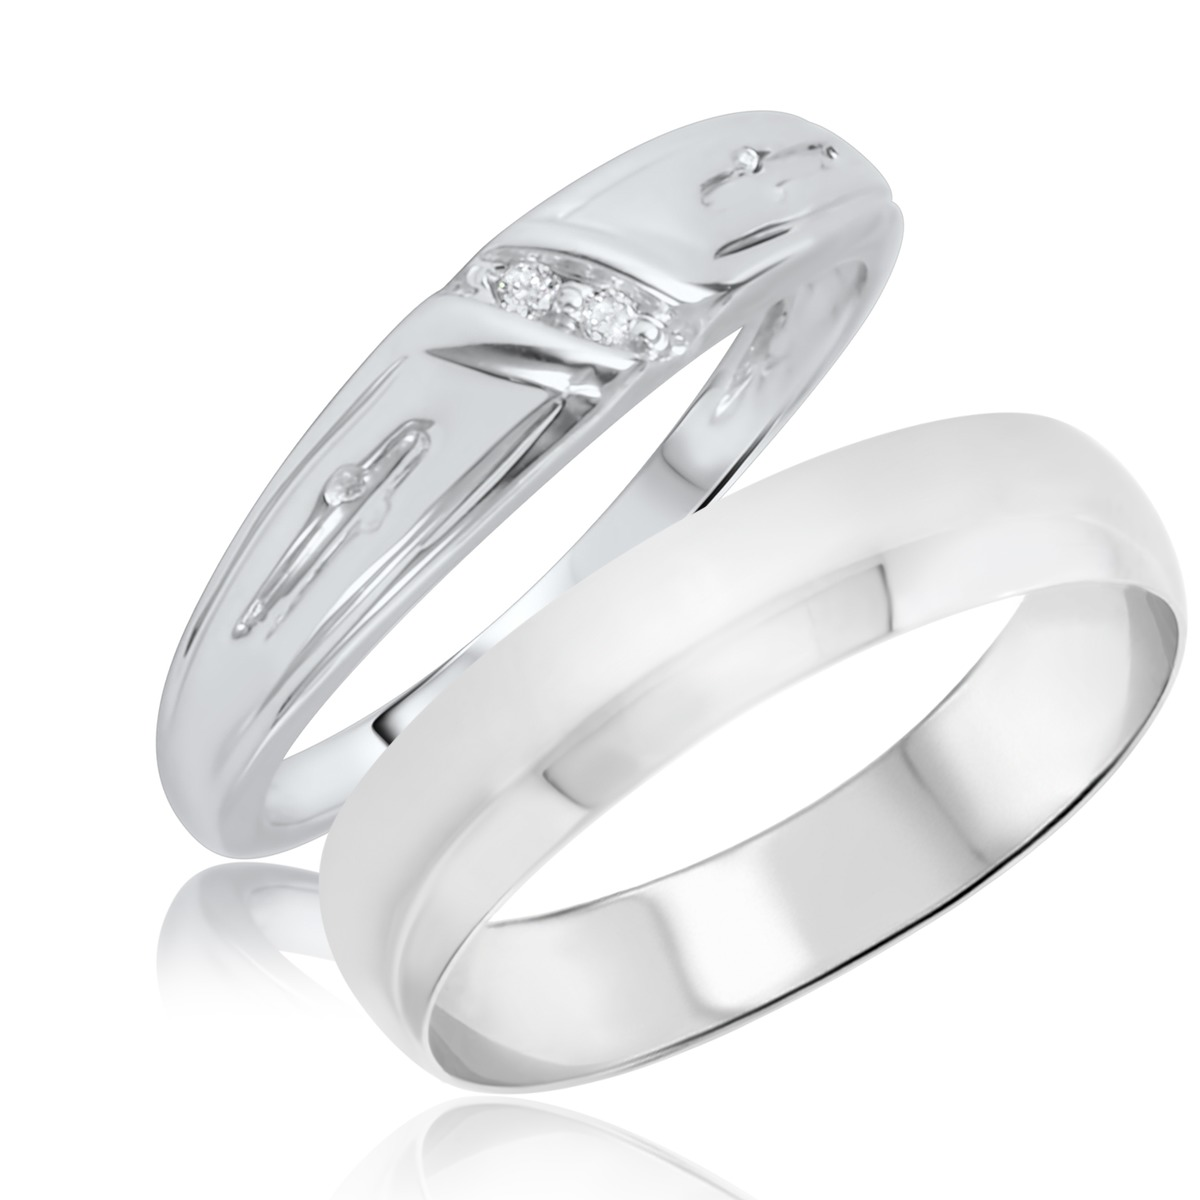 1/25 Carat T.W. Round Cut Diamond His and Hers Wedding Band Set 10K White Gold